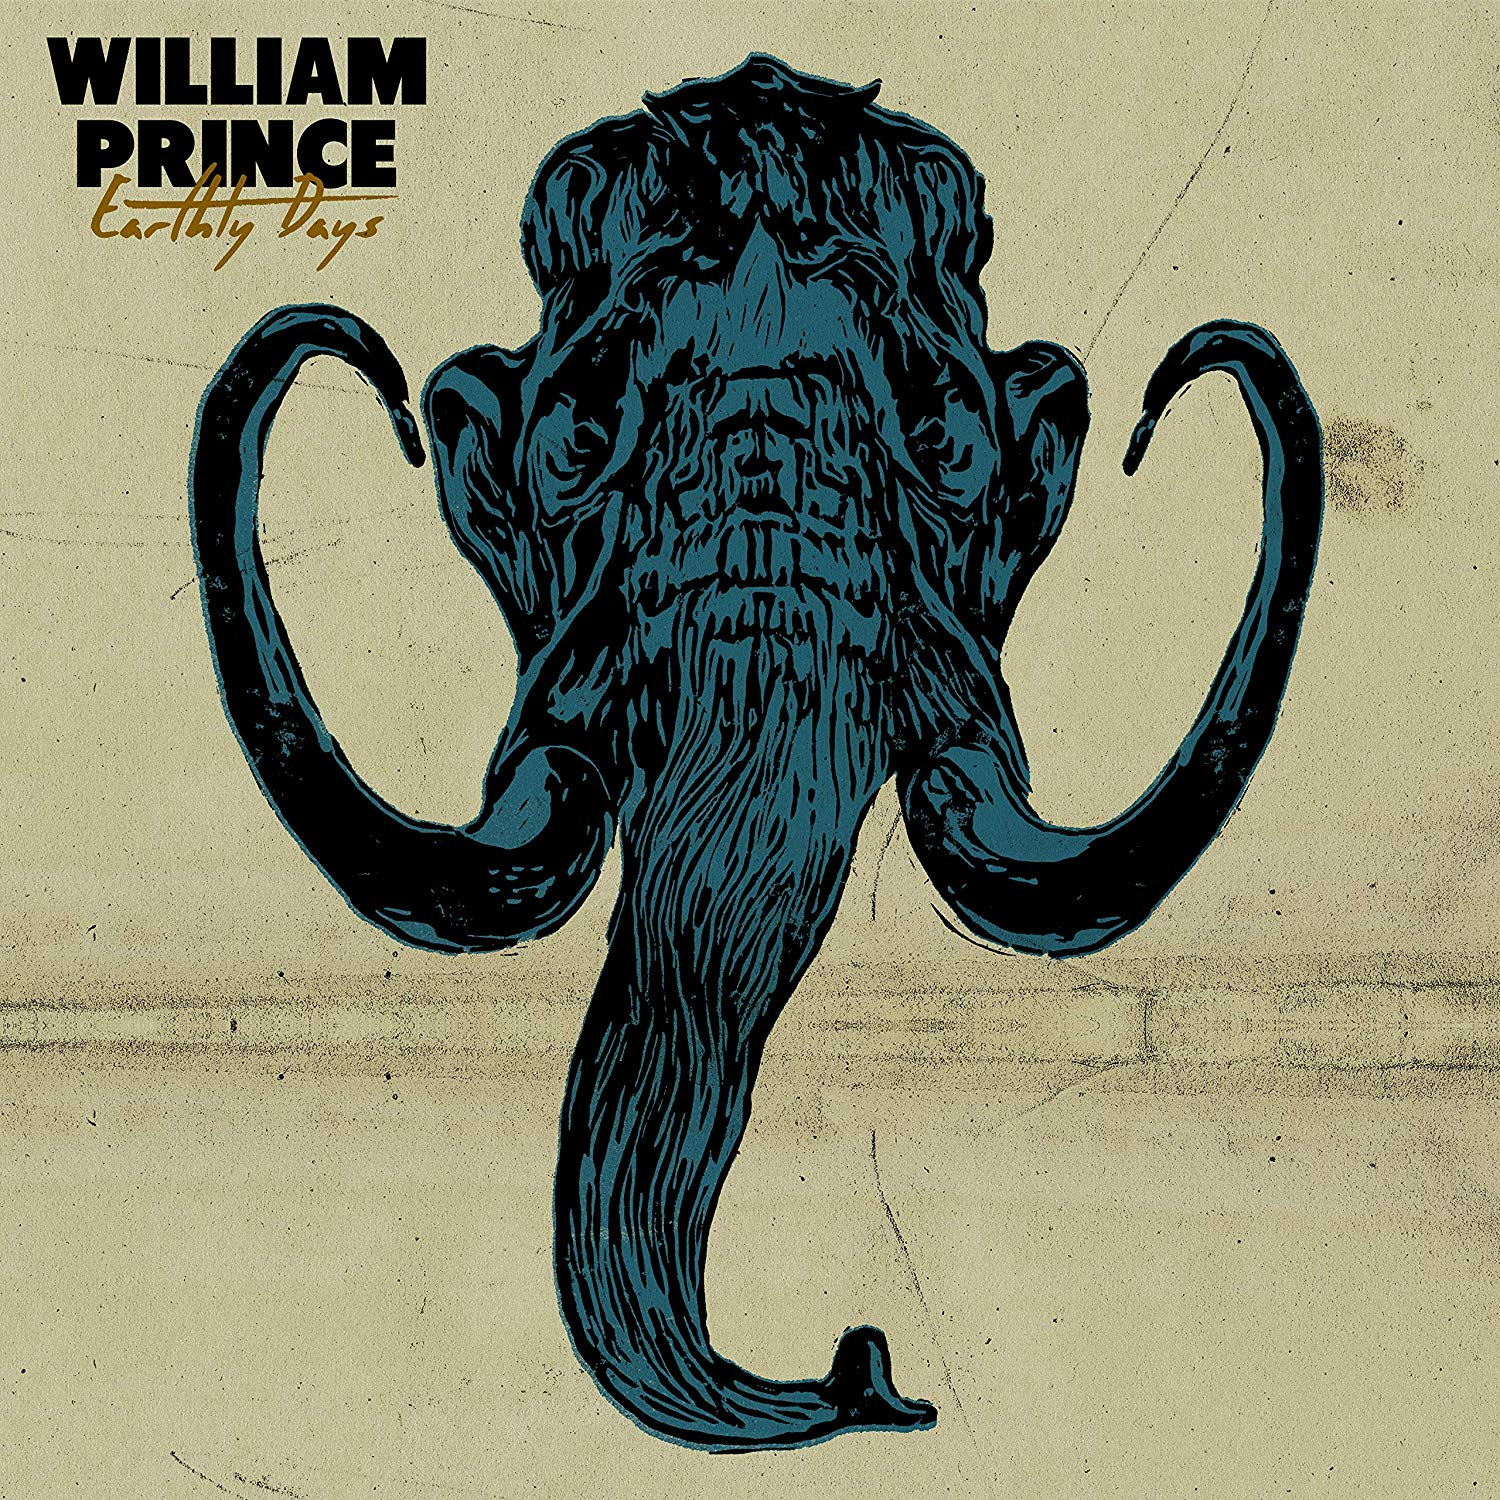 William Prince Earthly Days Upcoming Vinyl December